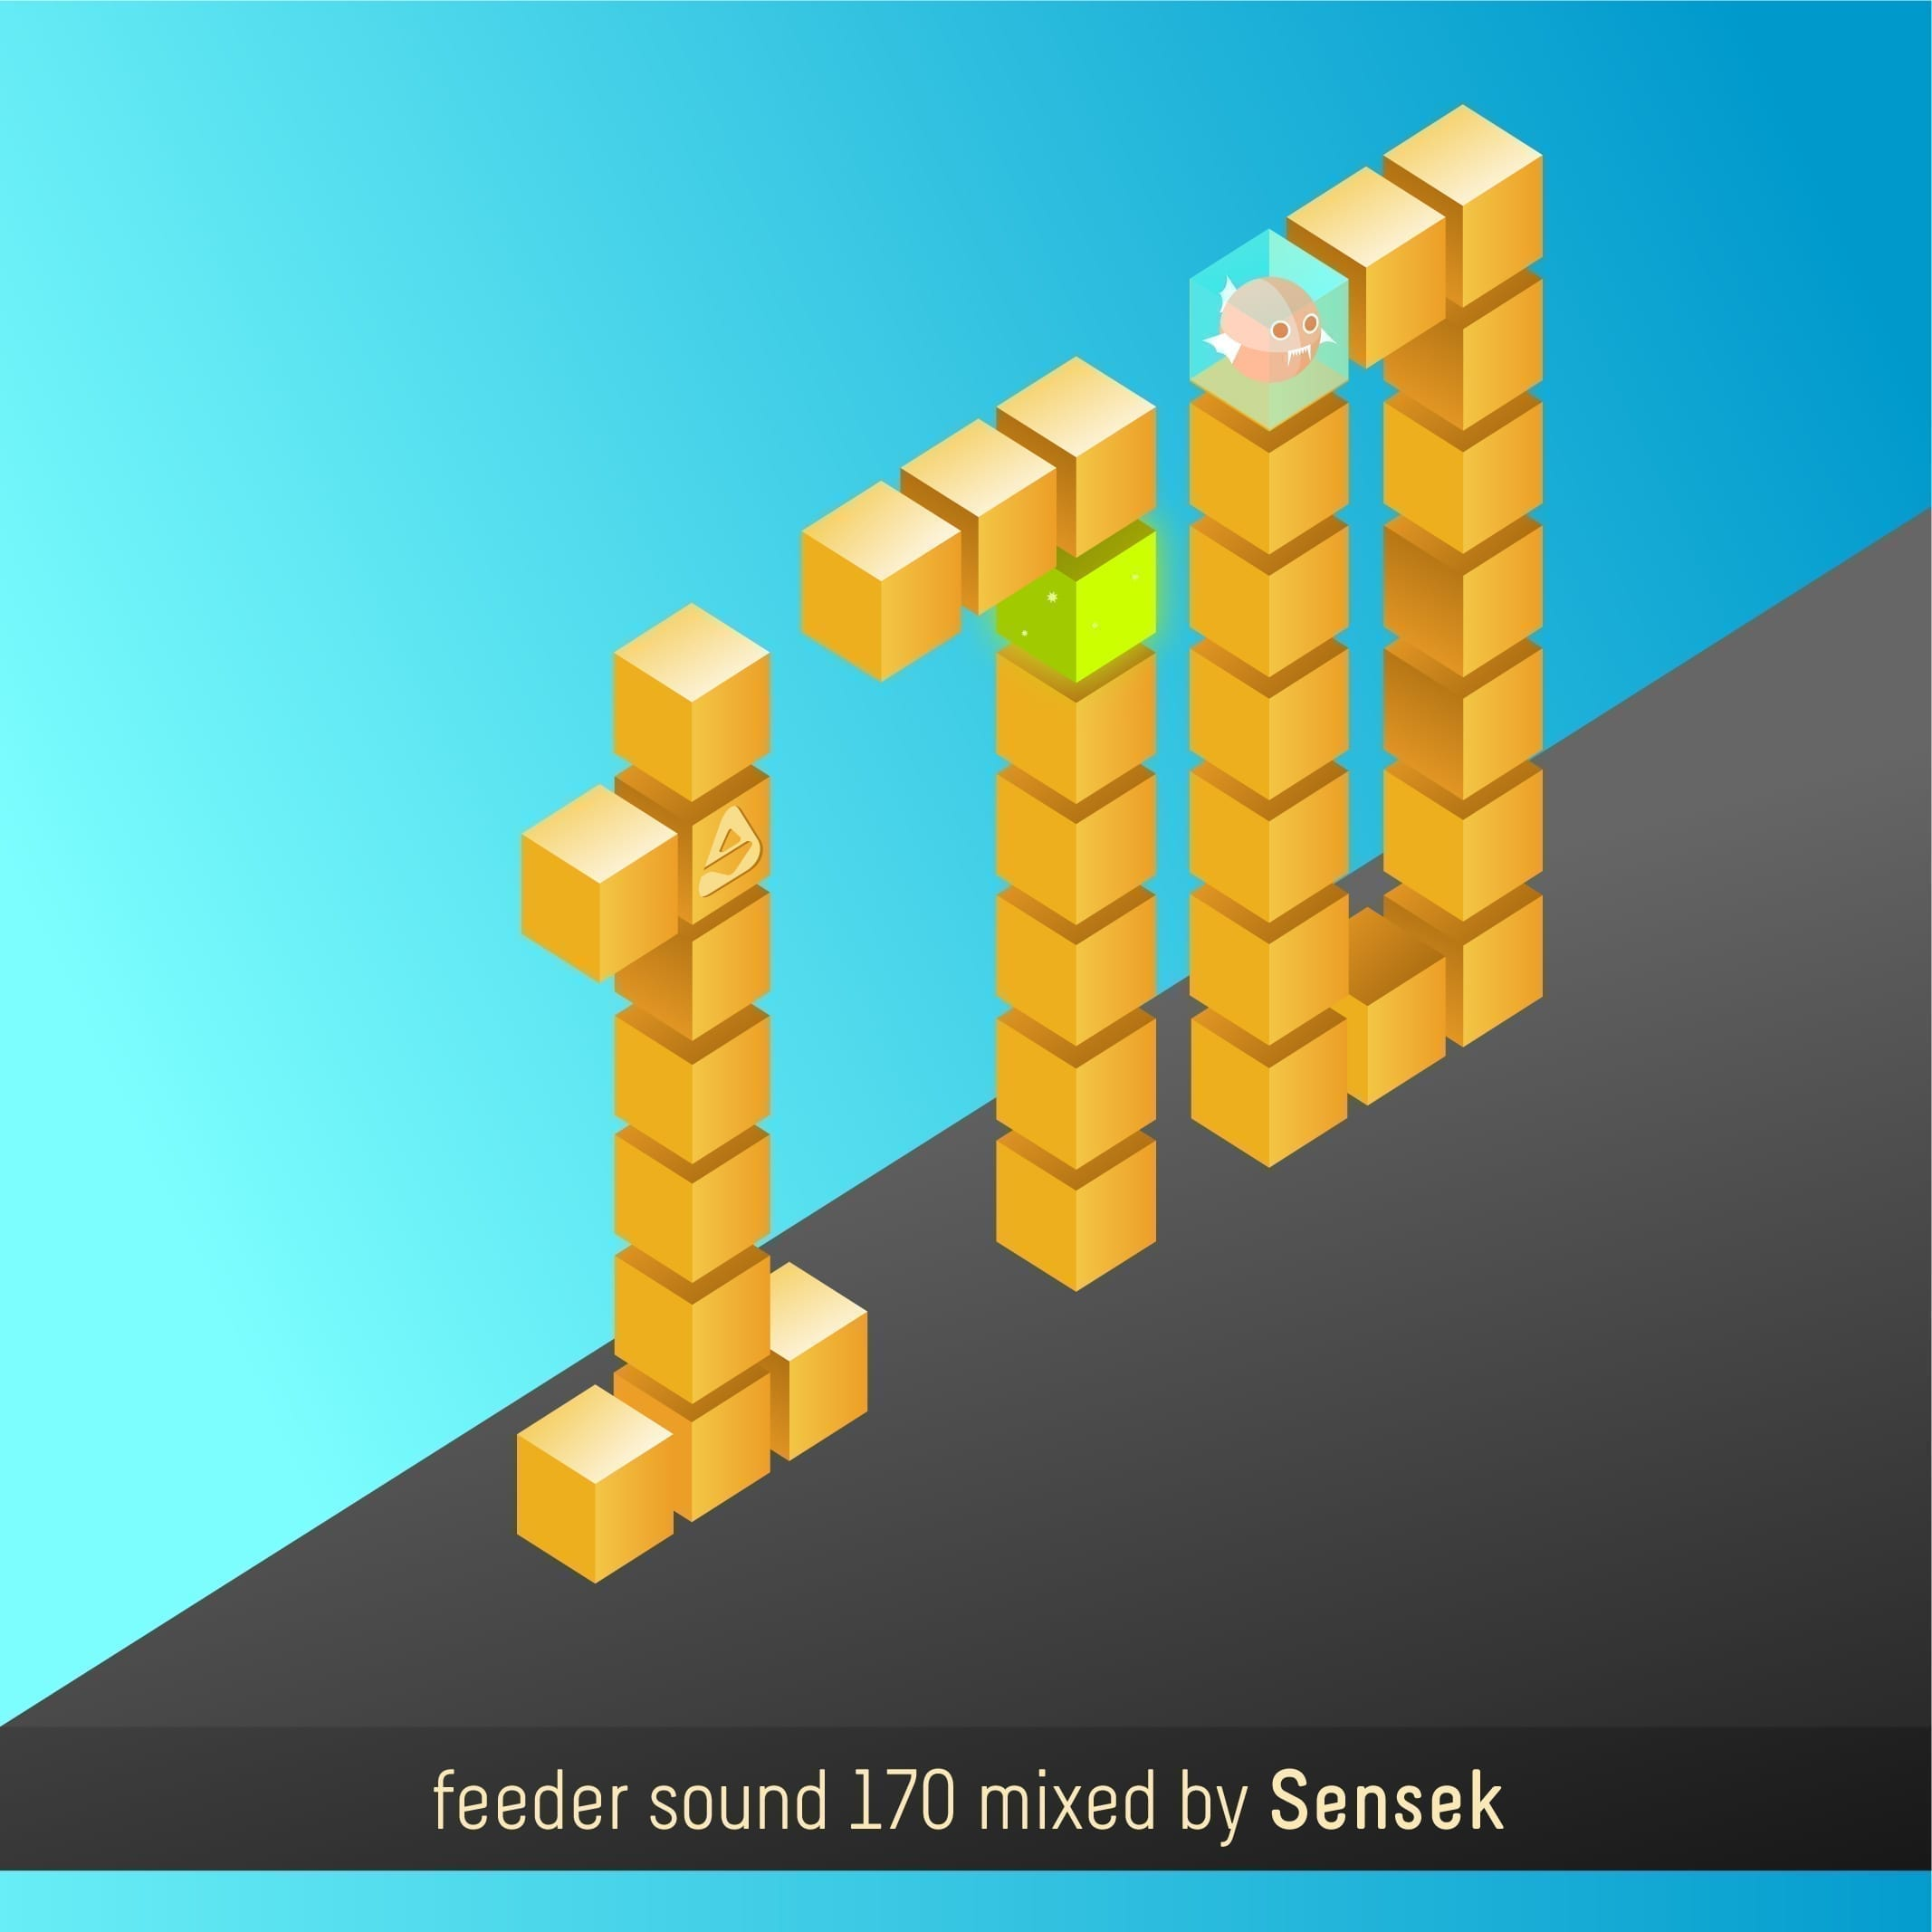 feeder sound 170 mixed by Sensek